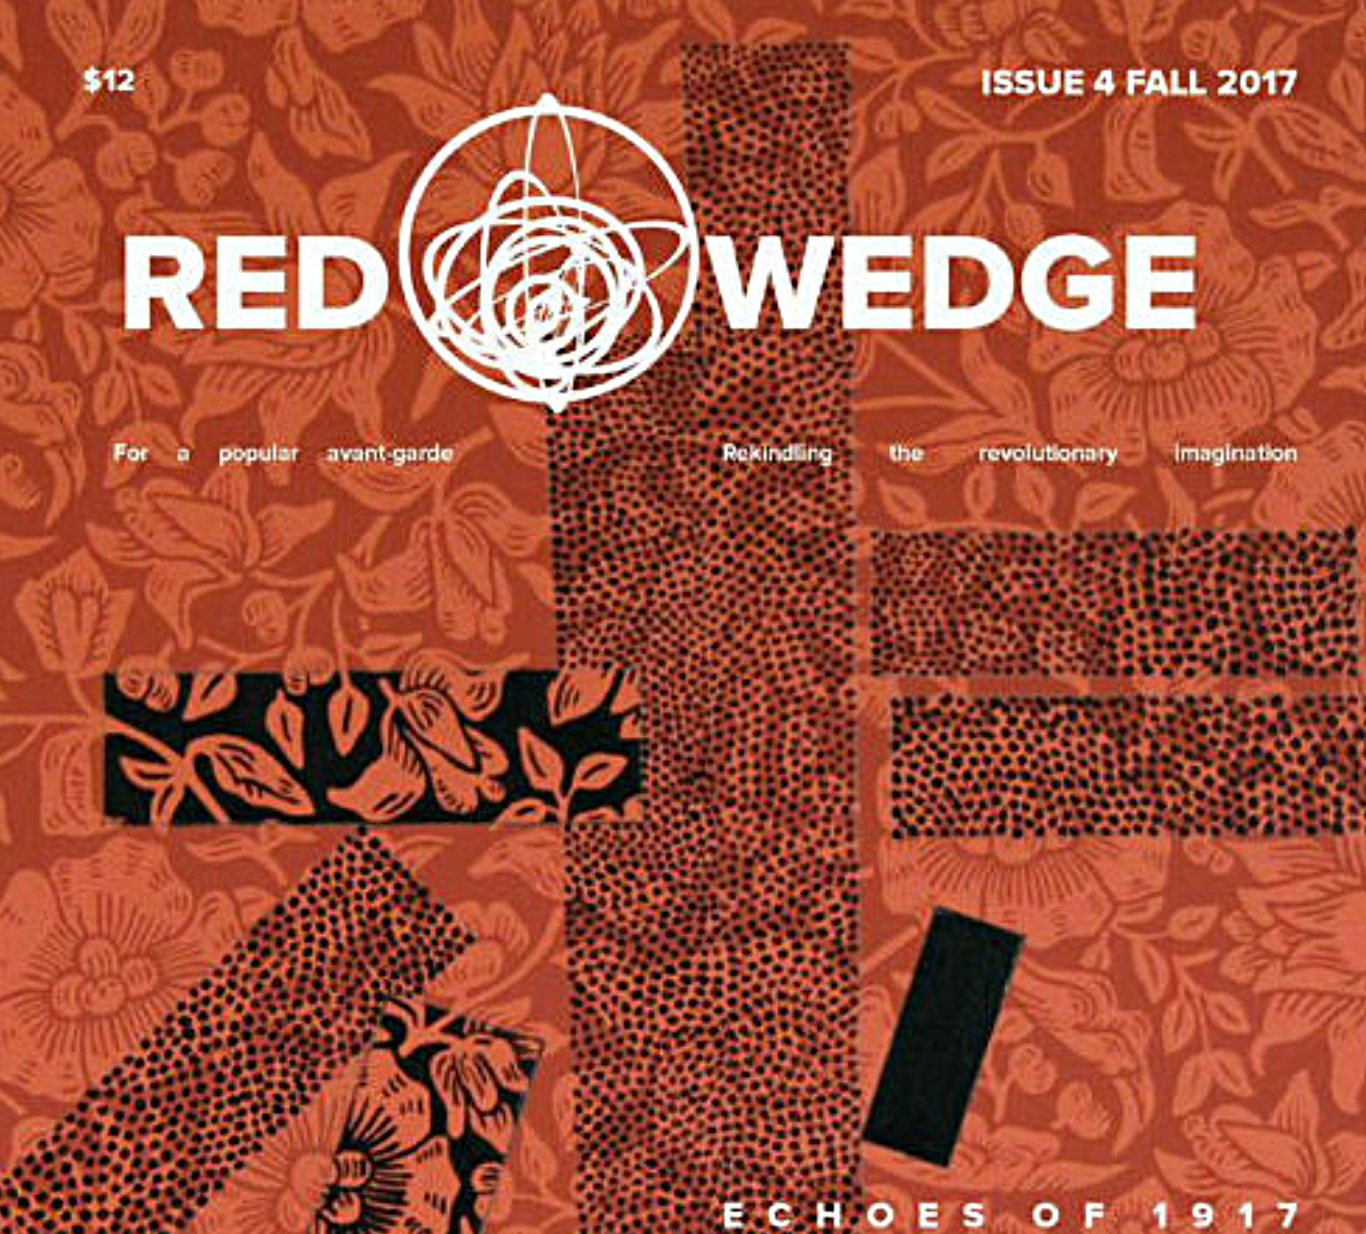 Red Wedge   is a website and publication dedicated to rekindling the revolutionary imagination. Unapologetically socialist in our outlook, we believe that art, literature, music, performance, and human creativity are essential to the project of imagining and building a fundamentally different world.   crystal stella becerril  has been part of the   Red Wedge  Magazine  editorial collective since 2013 and is currently the magazine's poetry editor.